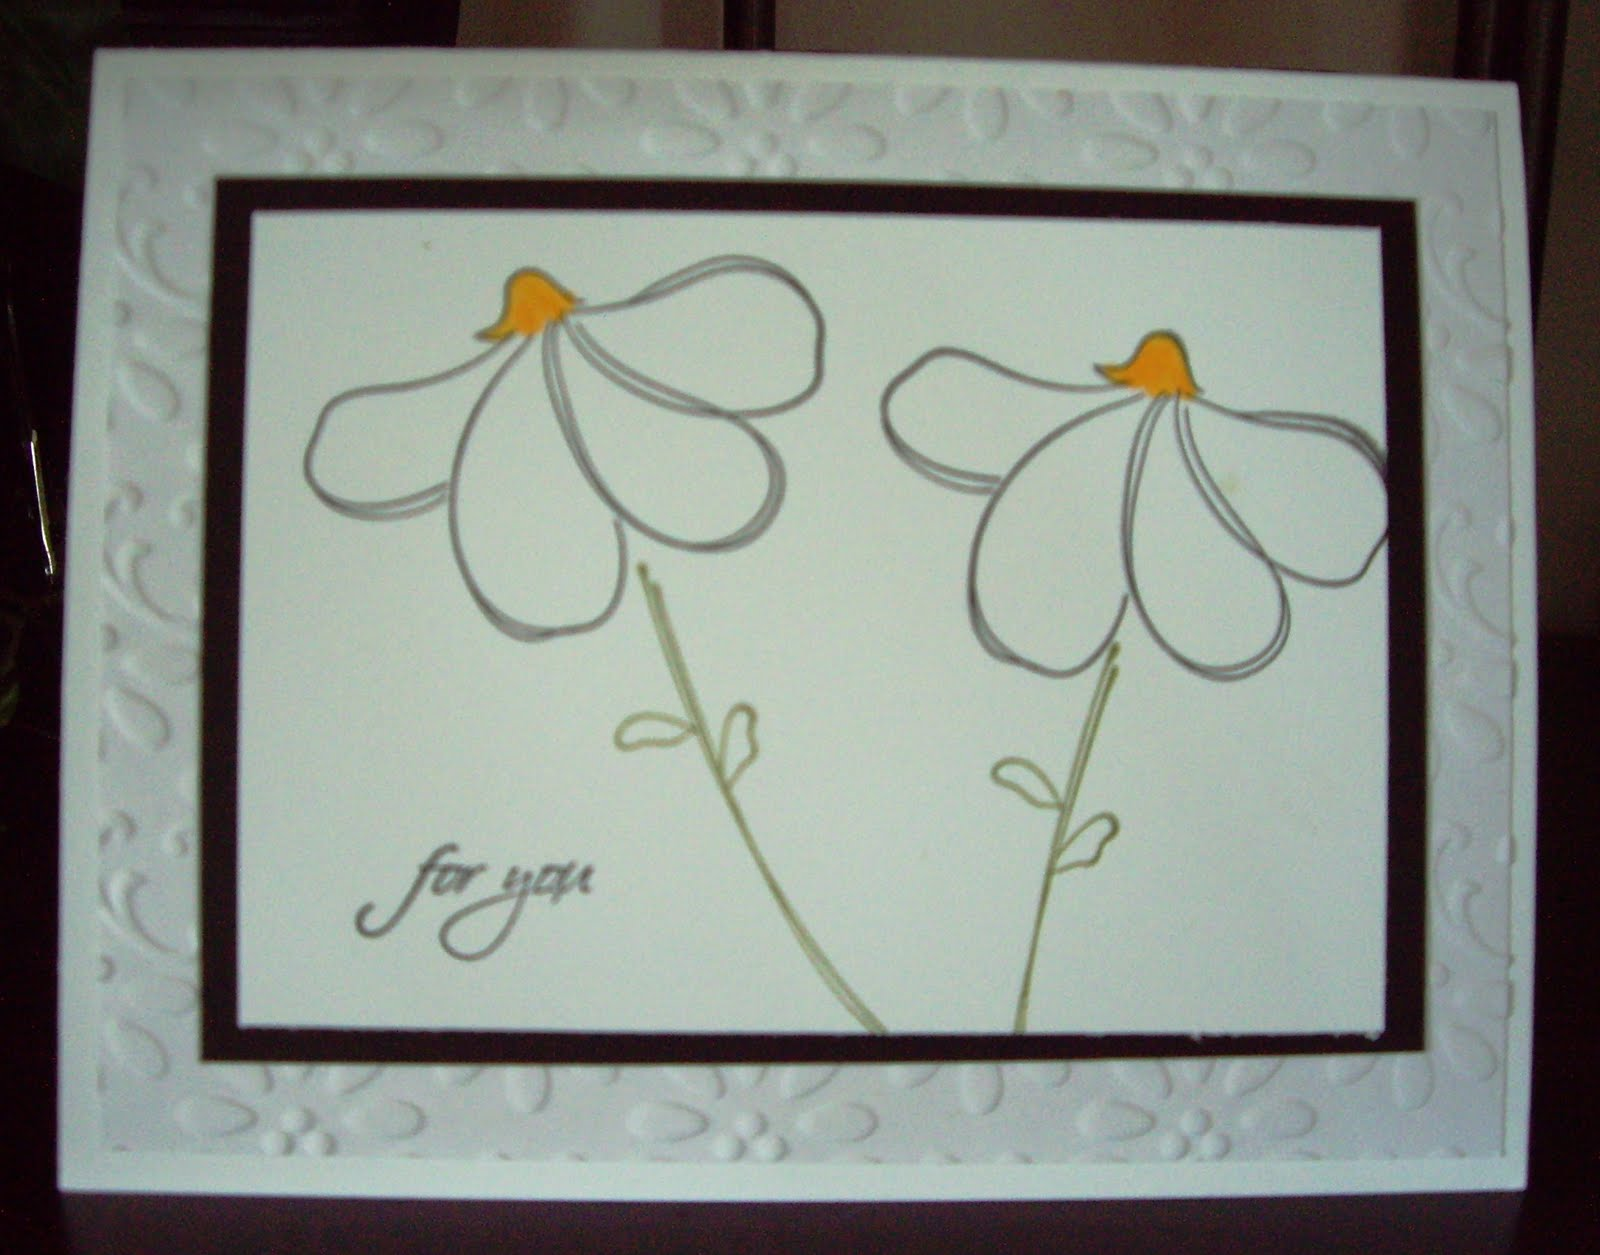 Simple Daisy Outline I stamped the simple daisy